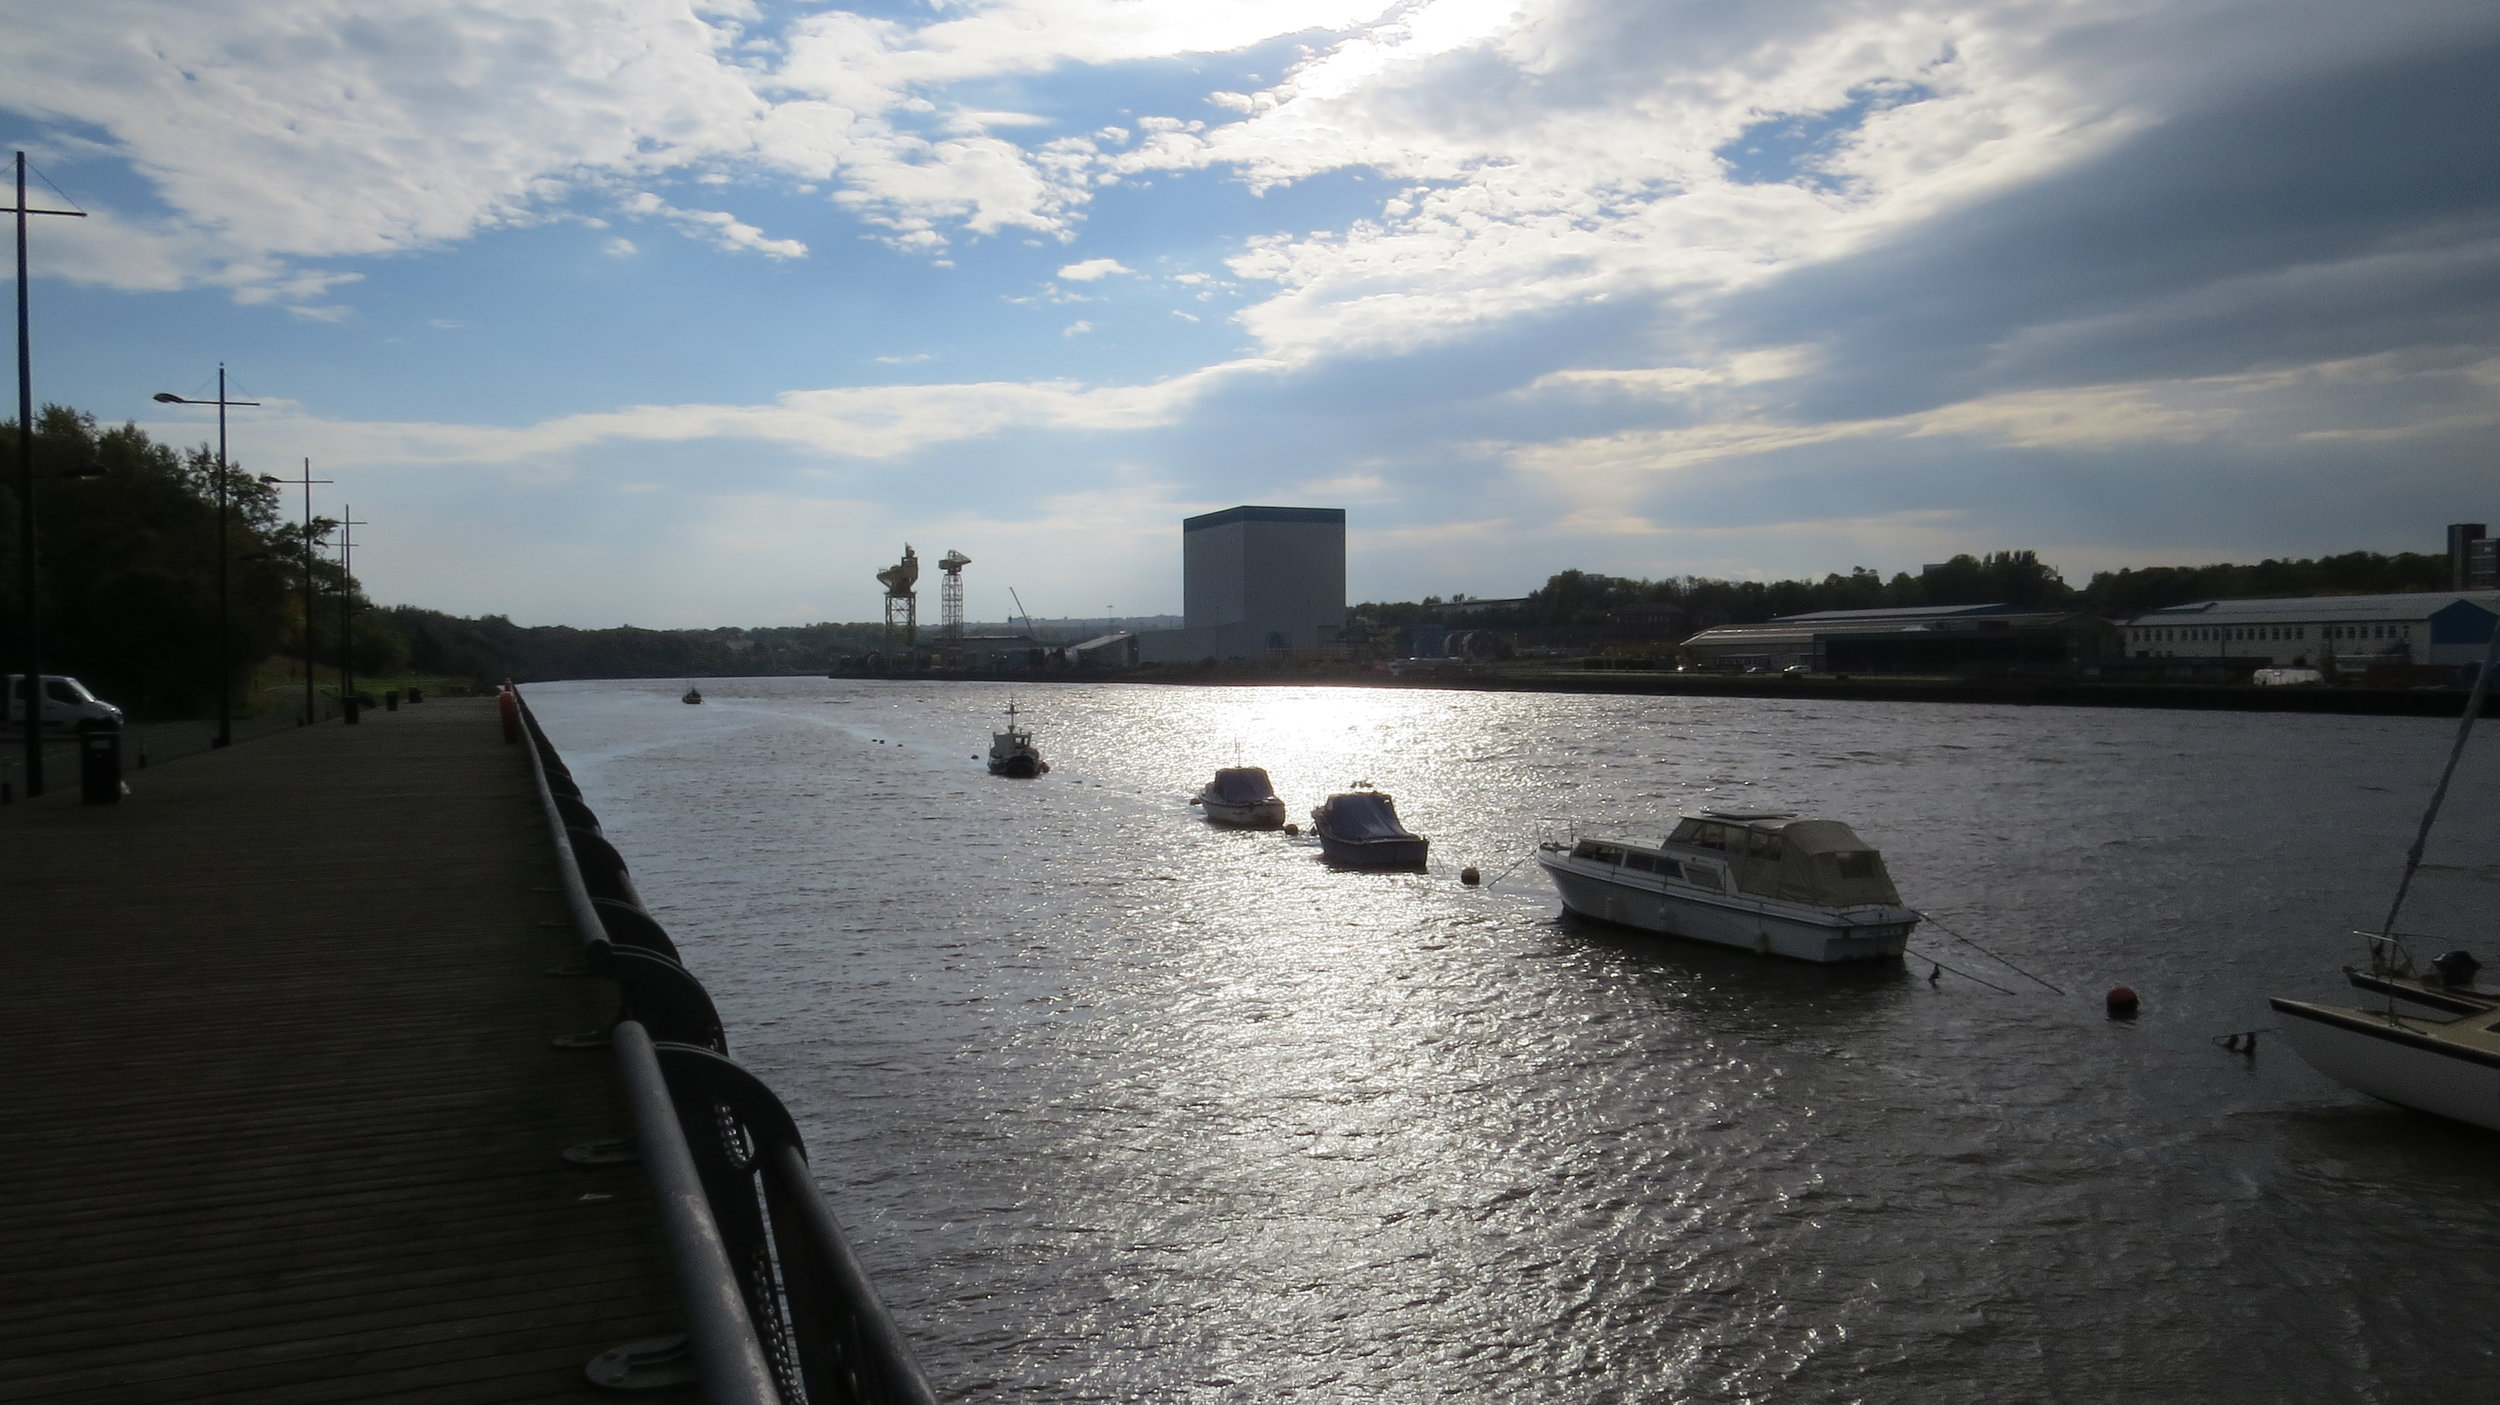 South of the River Tyne II